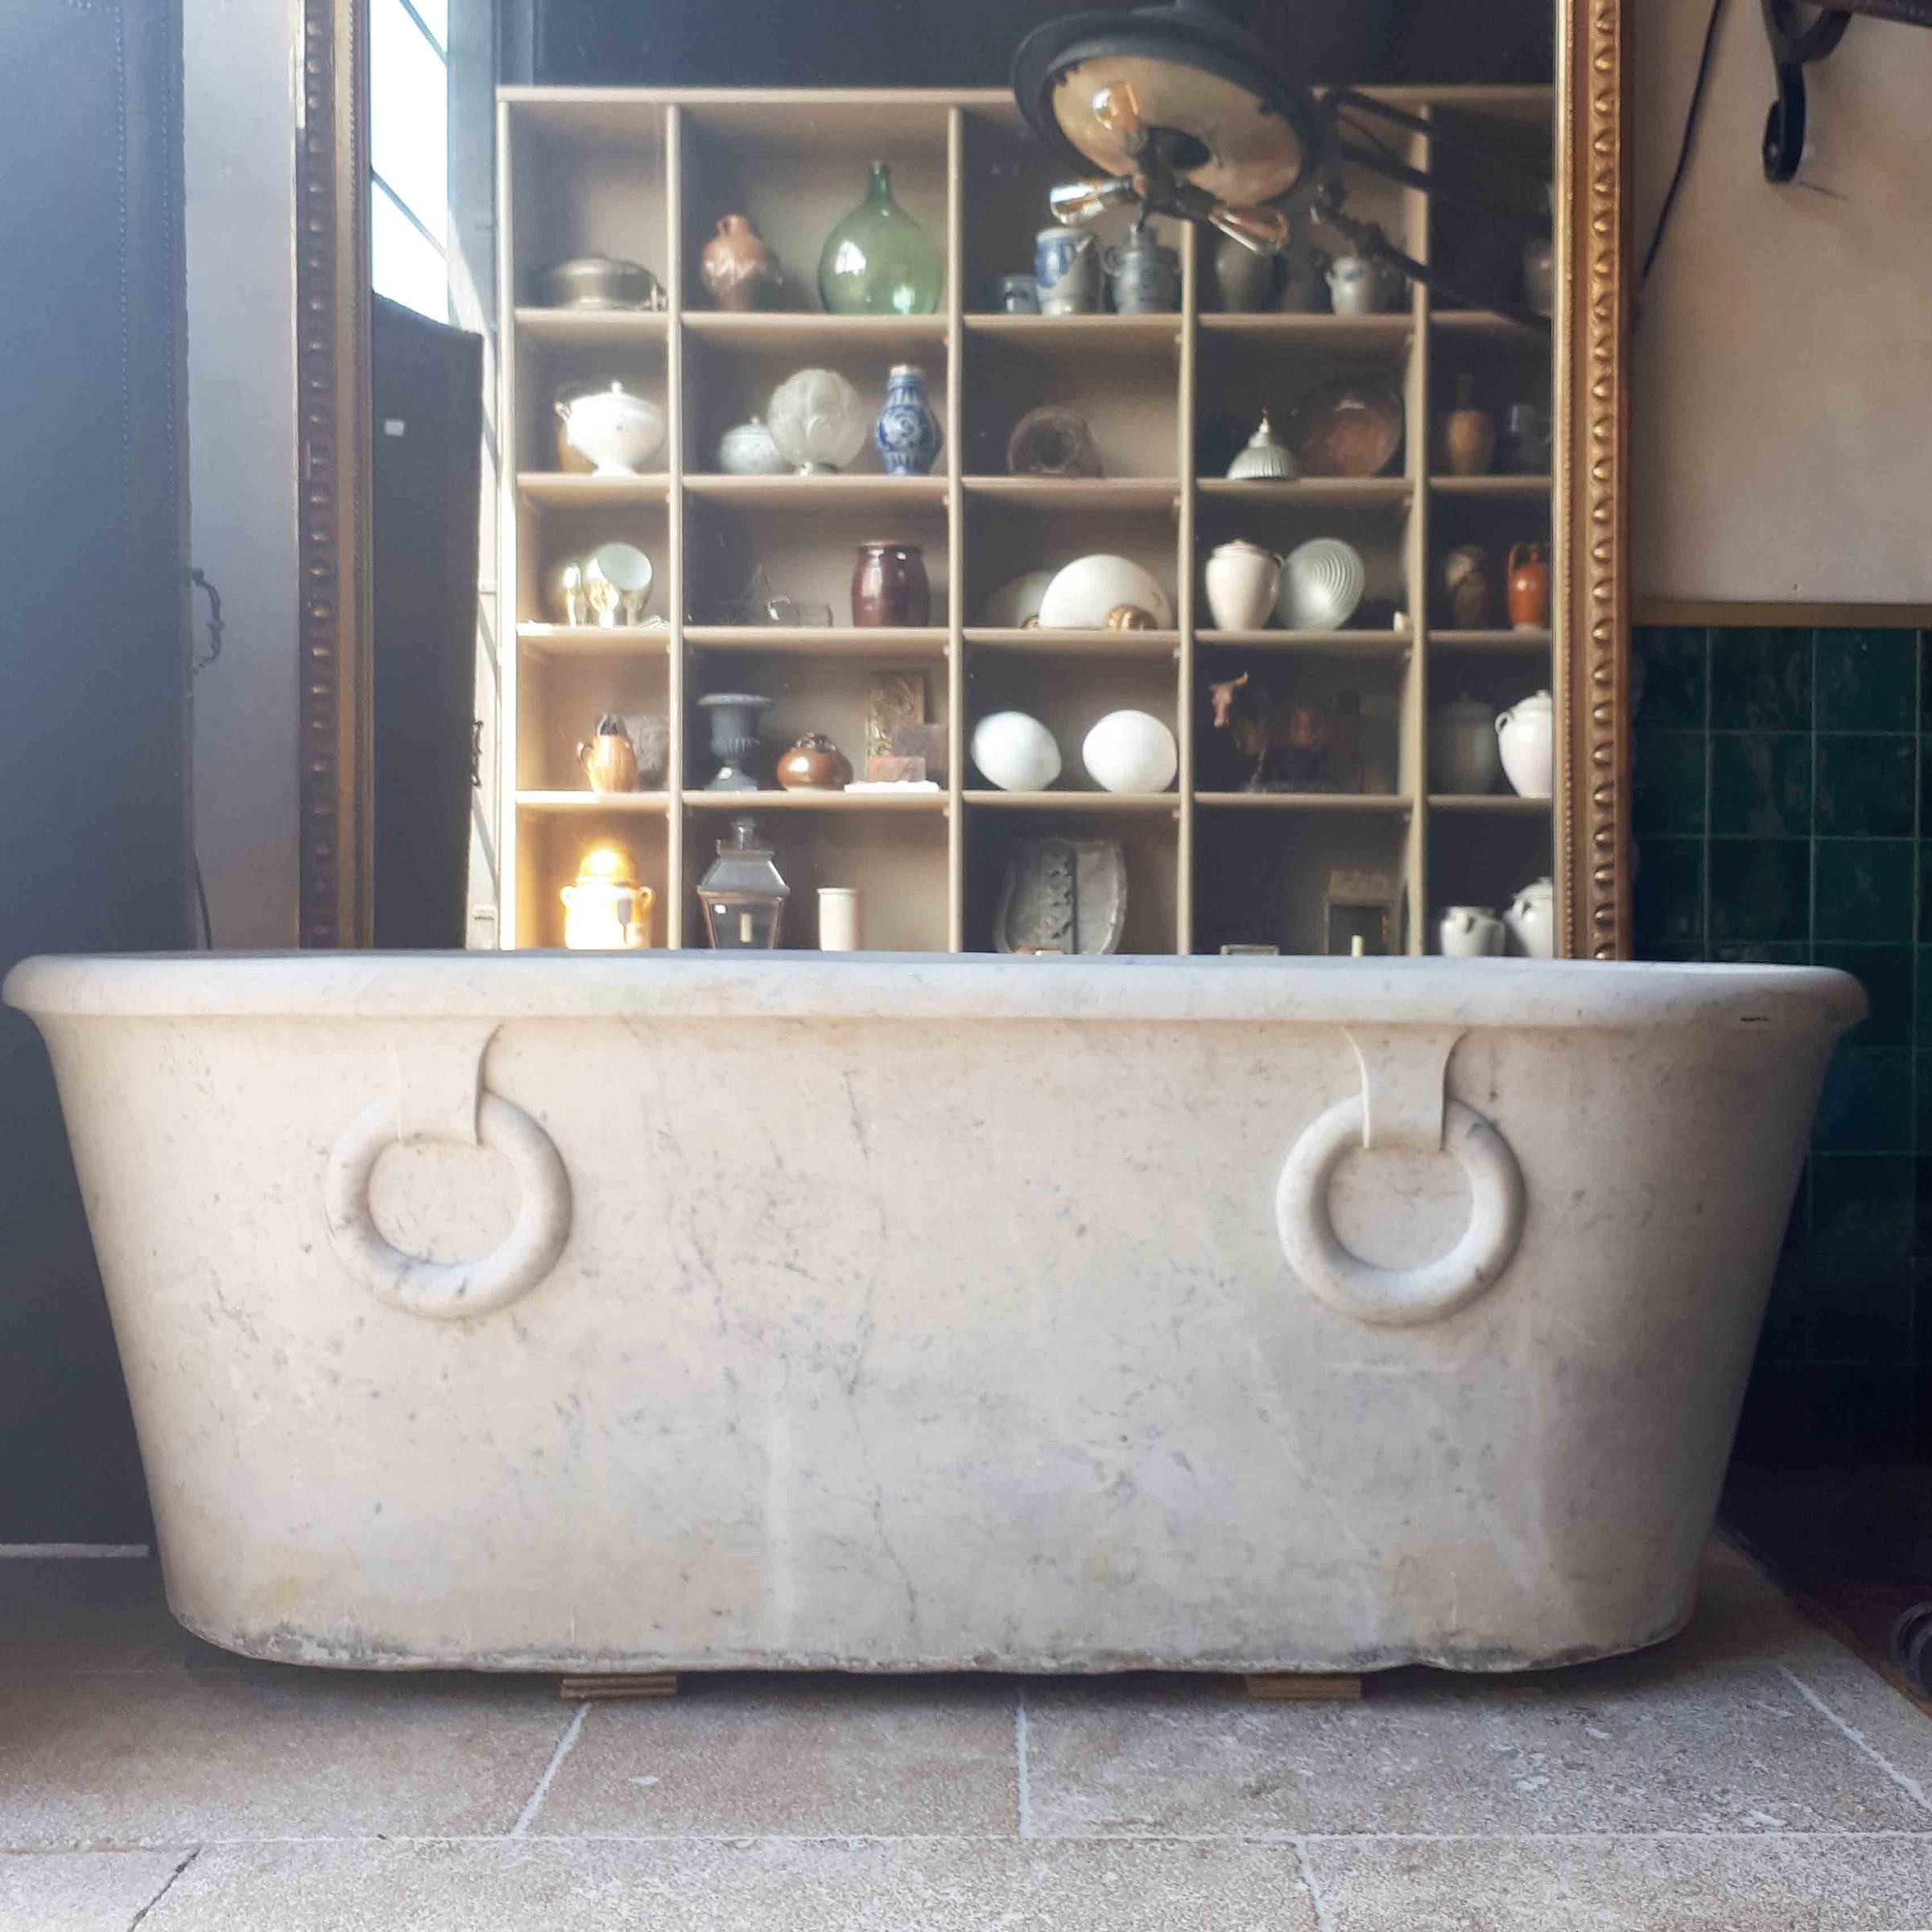 Carrara marble bath in empire style early 19th century